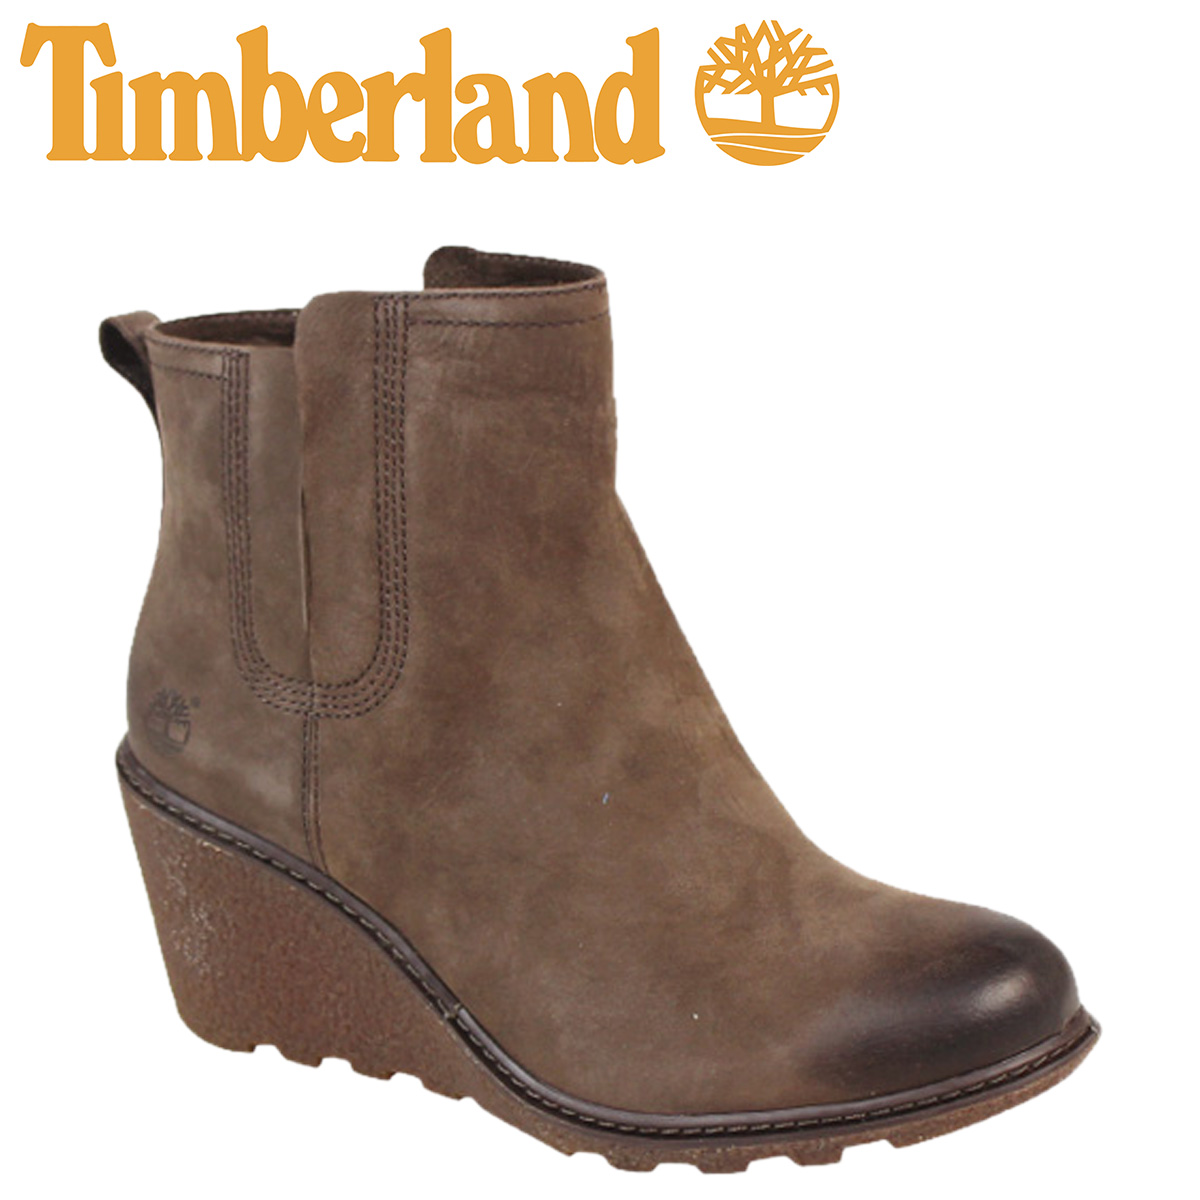 Timberland Amston Chelsea Boot (Women's) jN6W8v